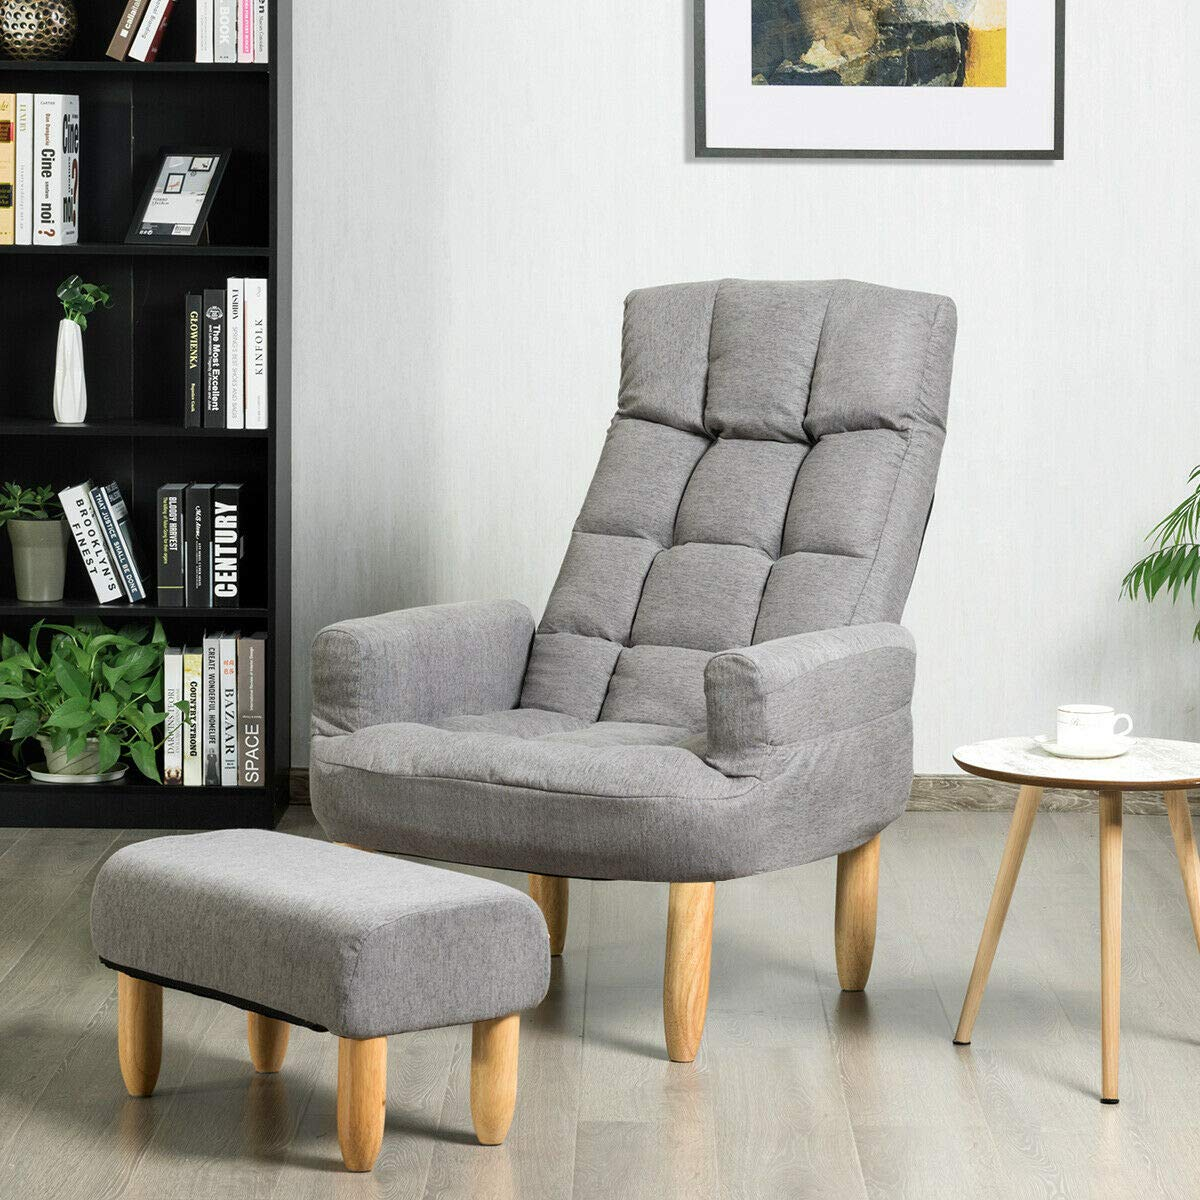 Giantex Folding Lazy most comfortable Reading chair